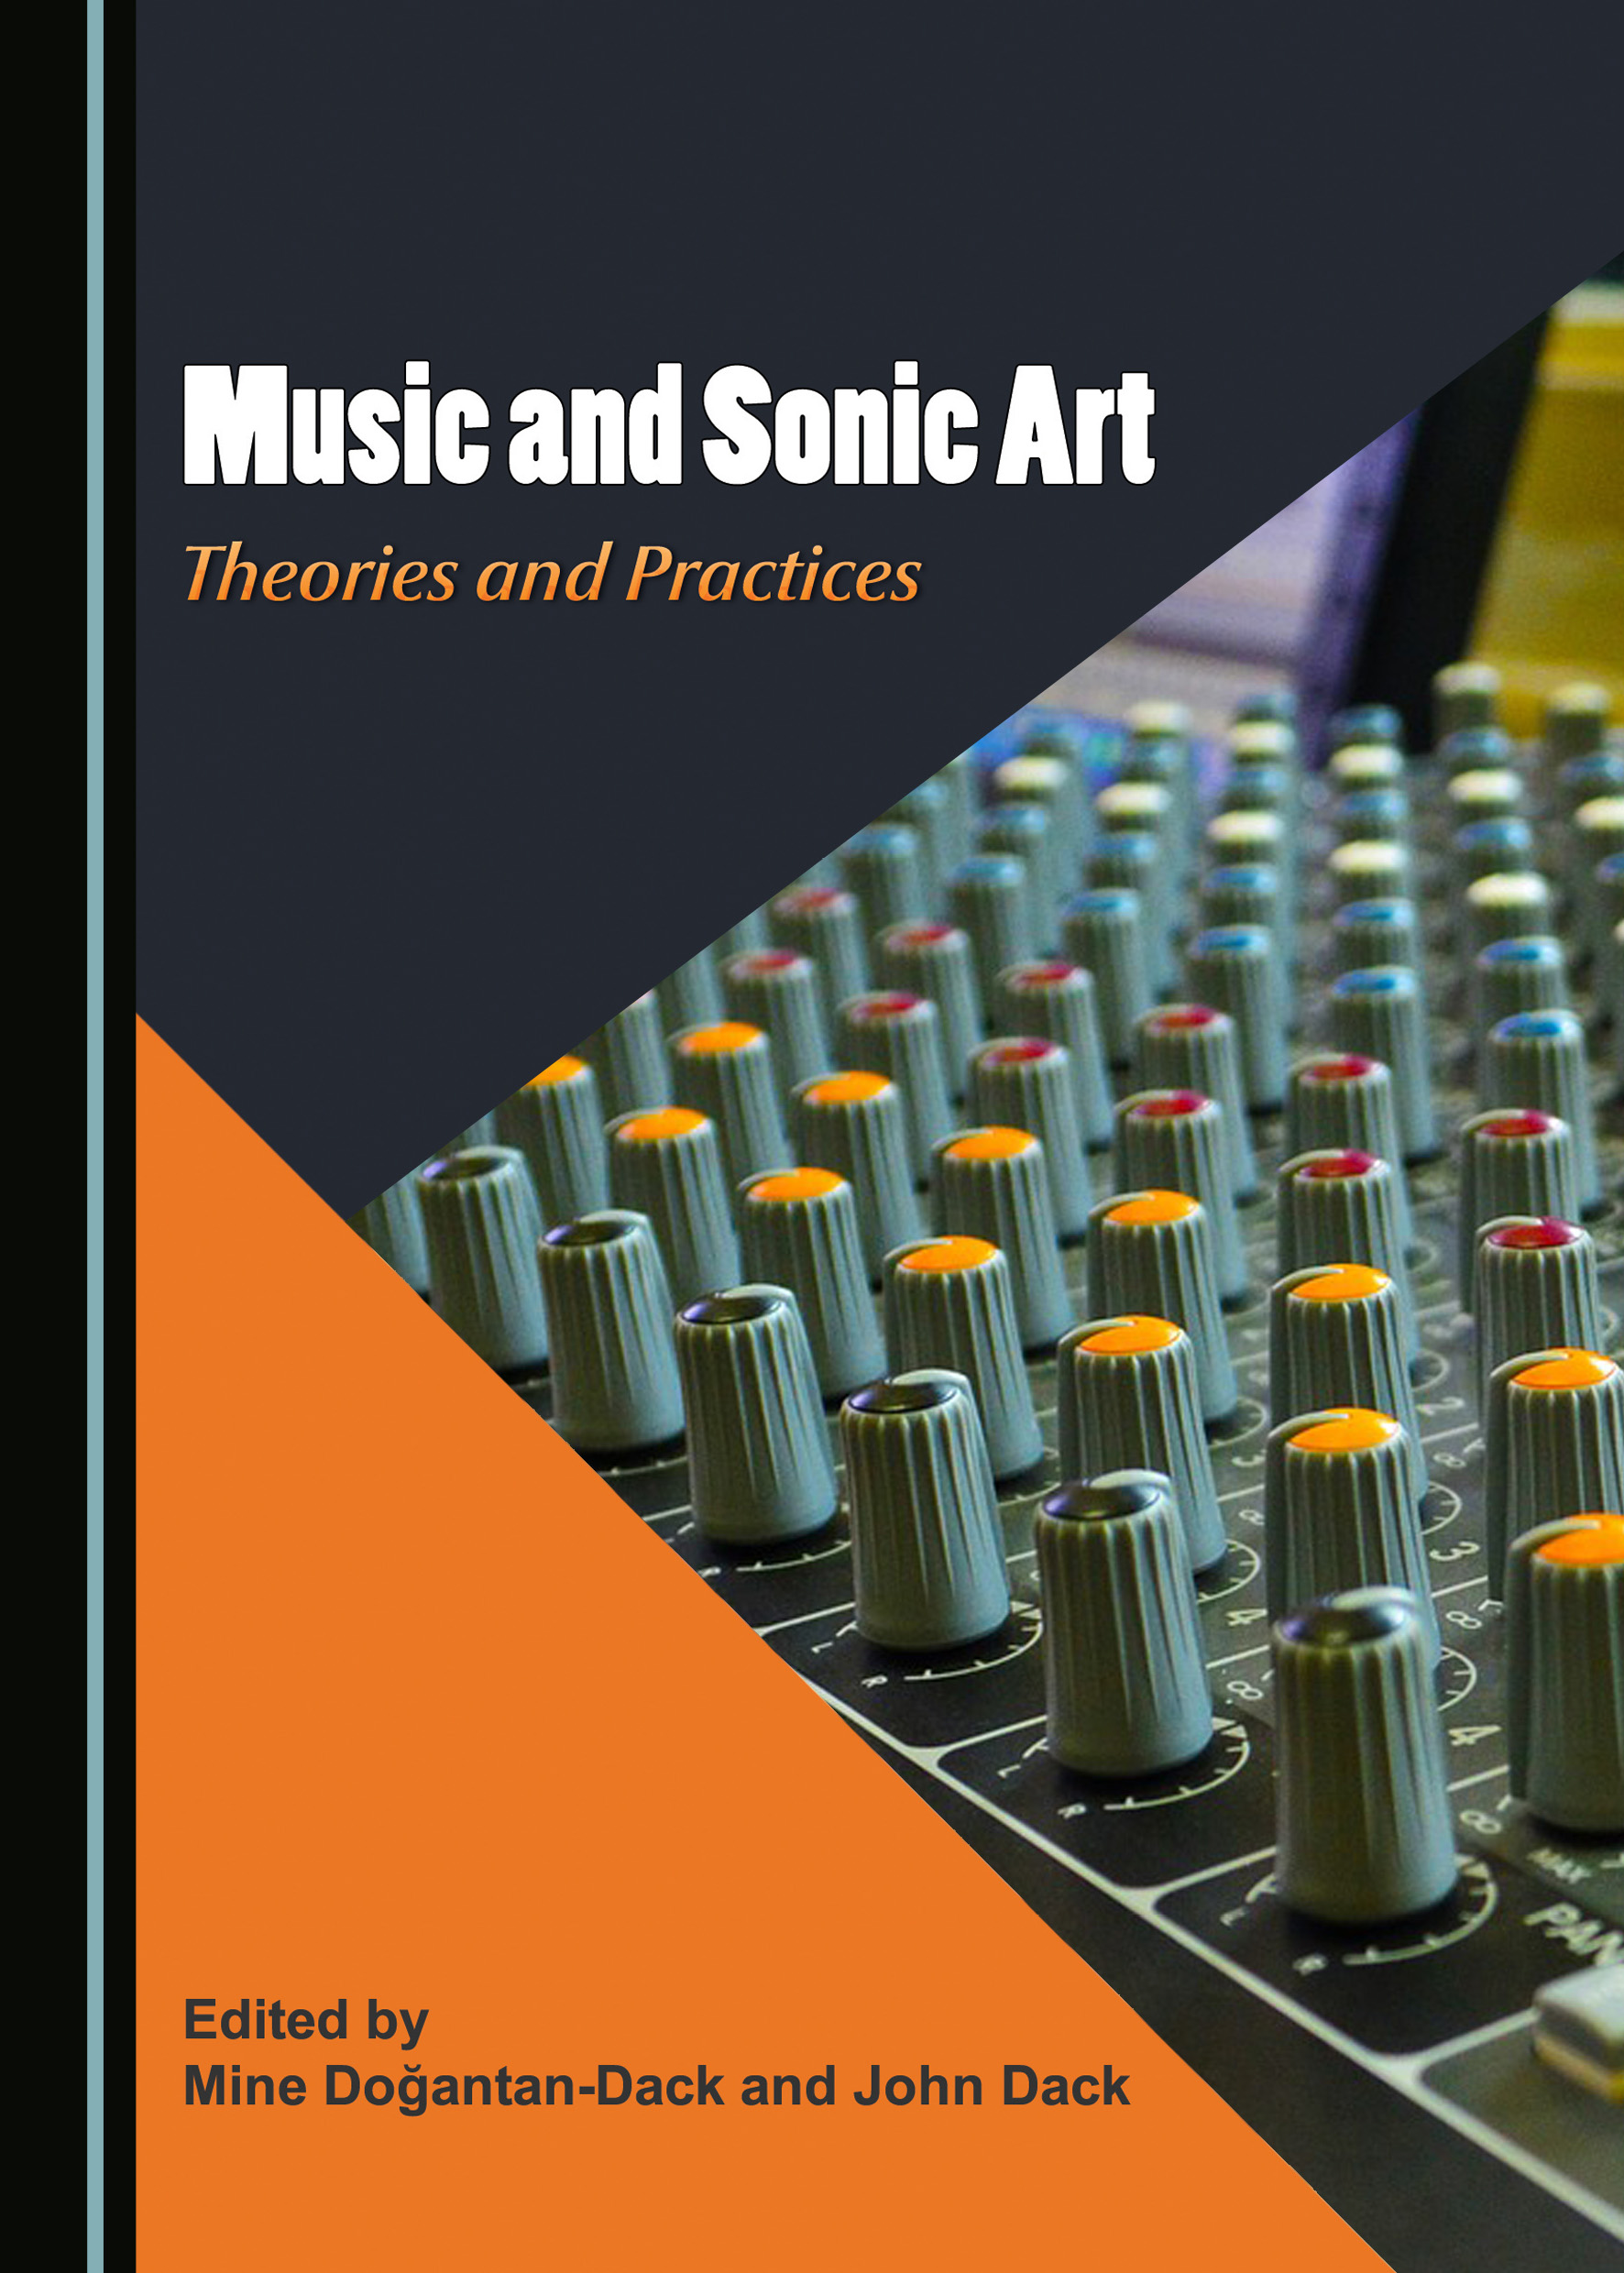 Music and Sonic Art: Theories and Practices